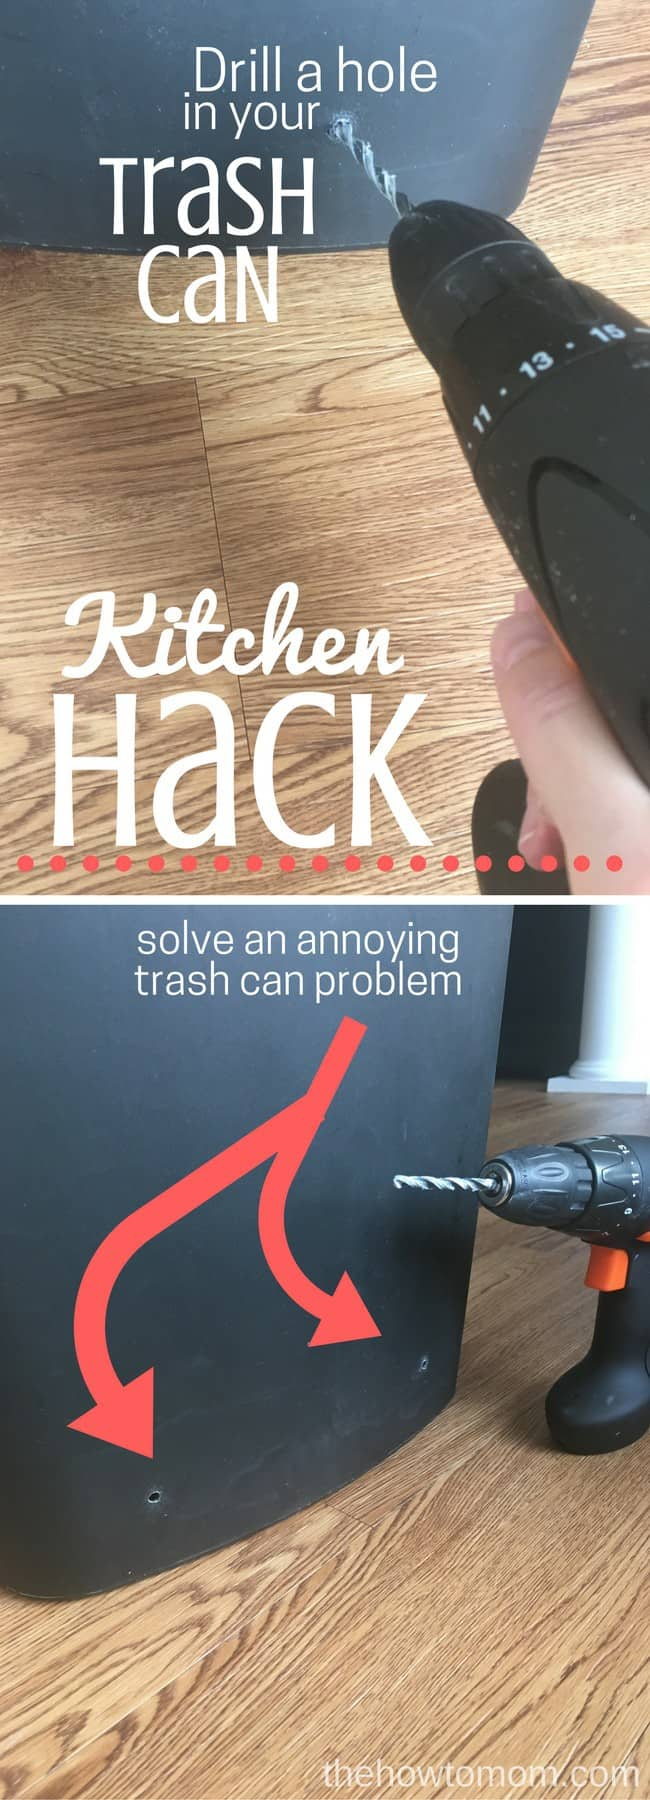 Kitchen Hack - Drill a hole in your trash can